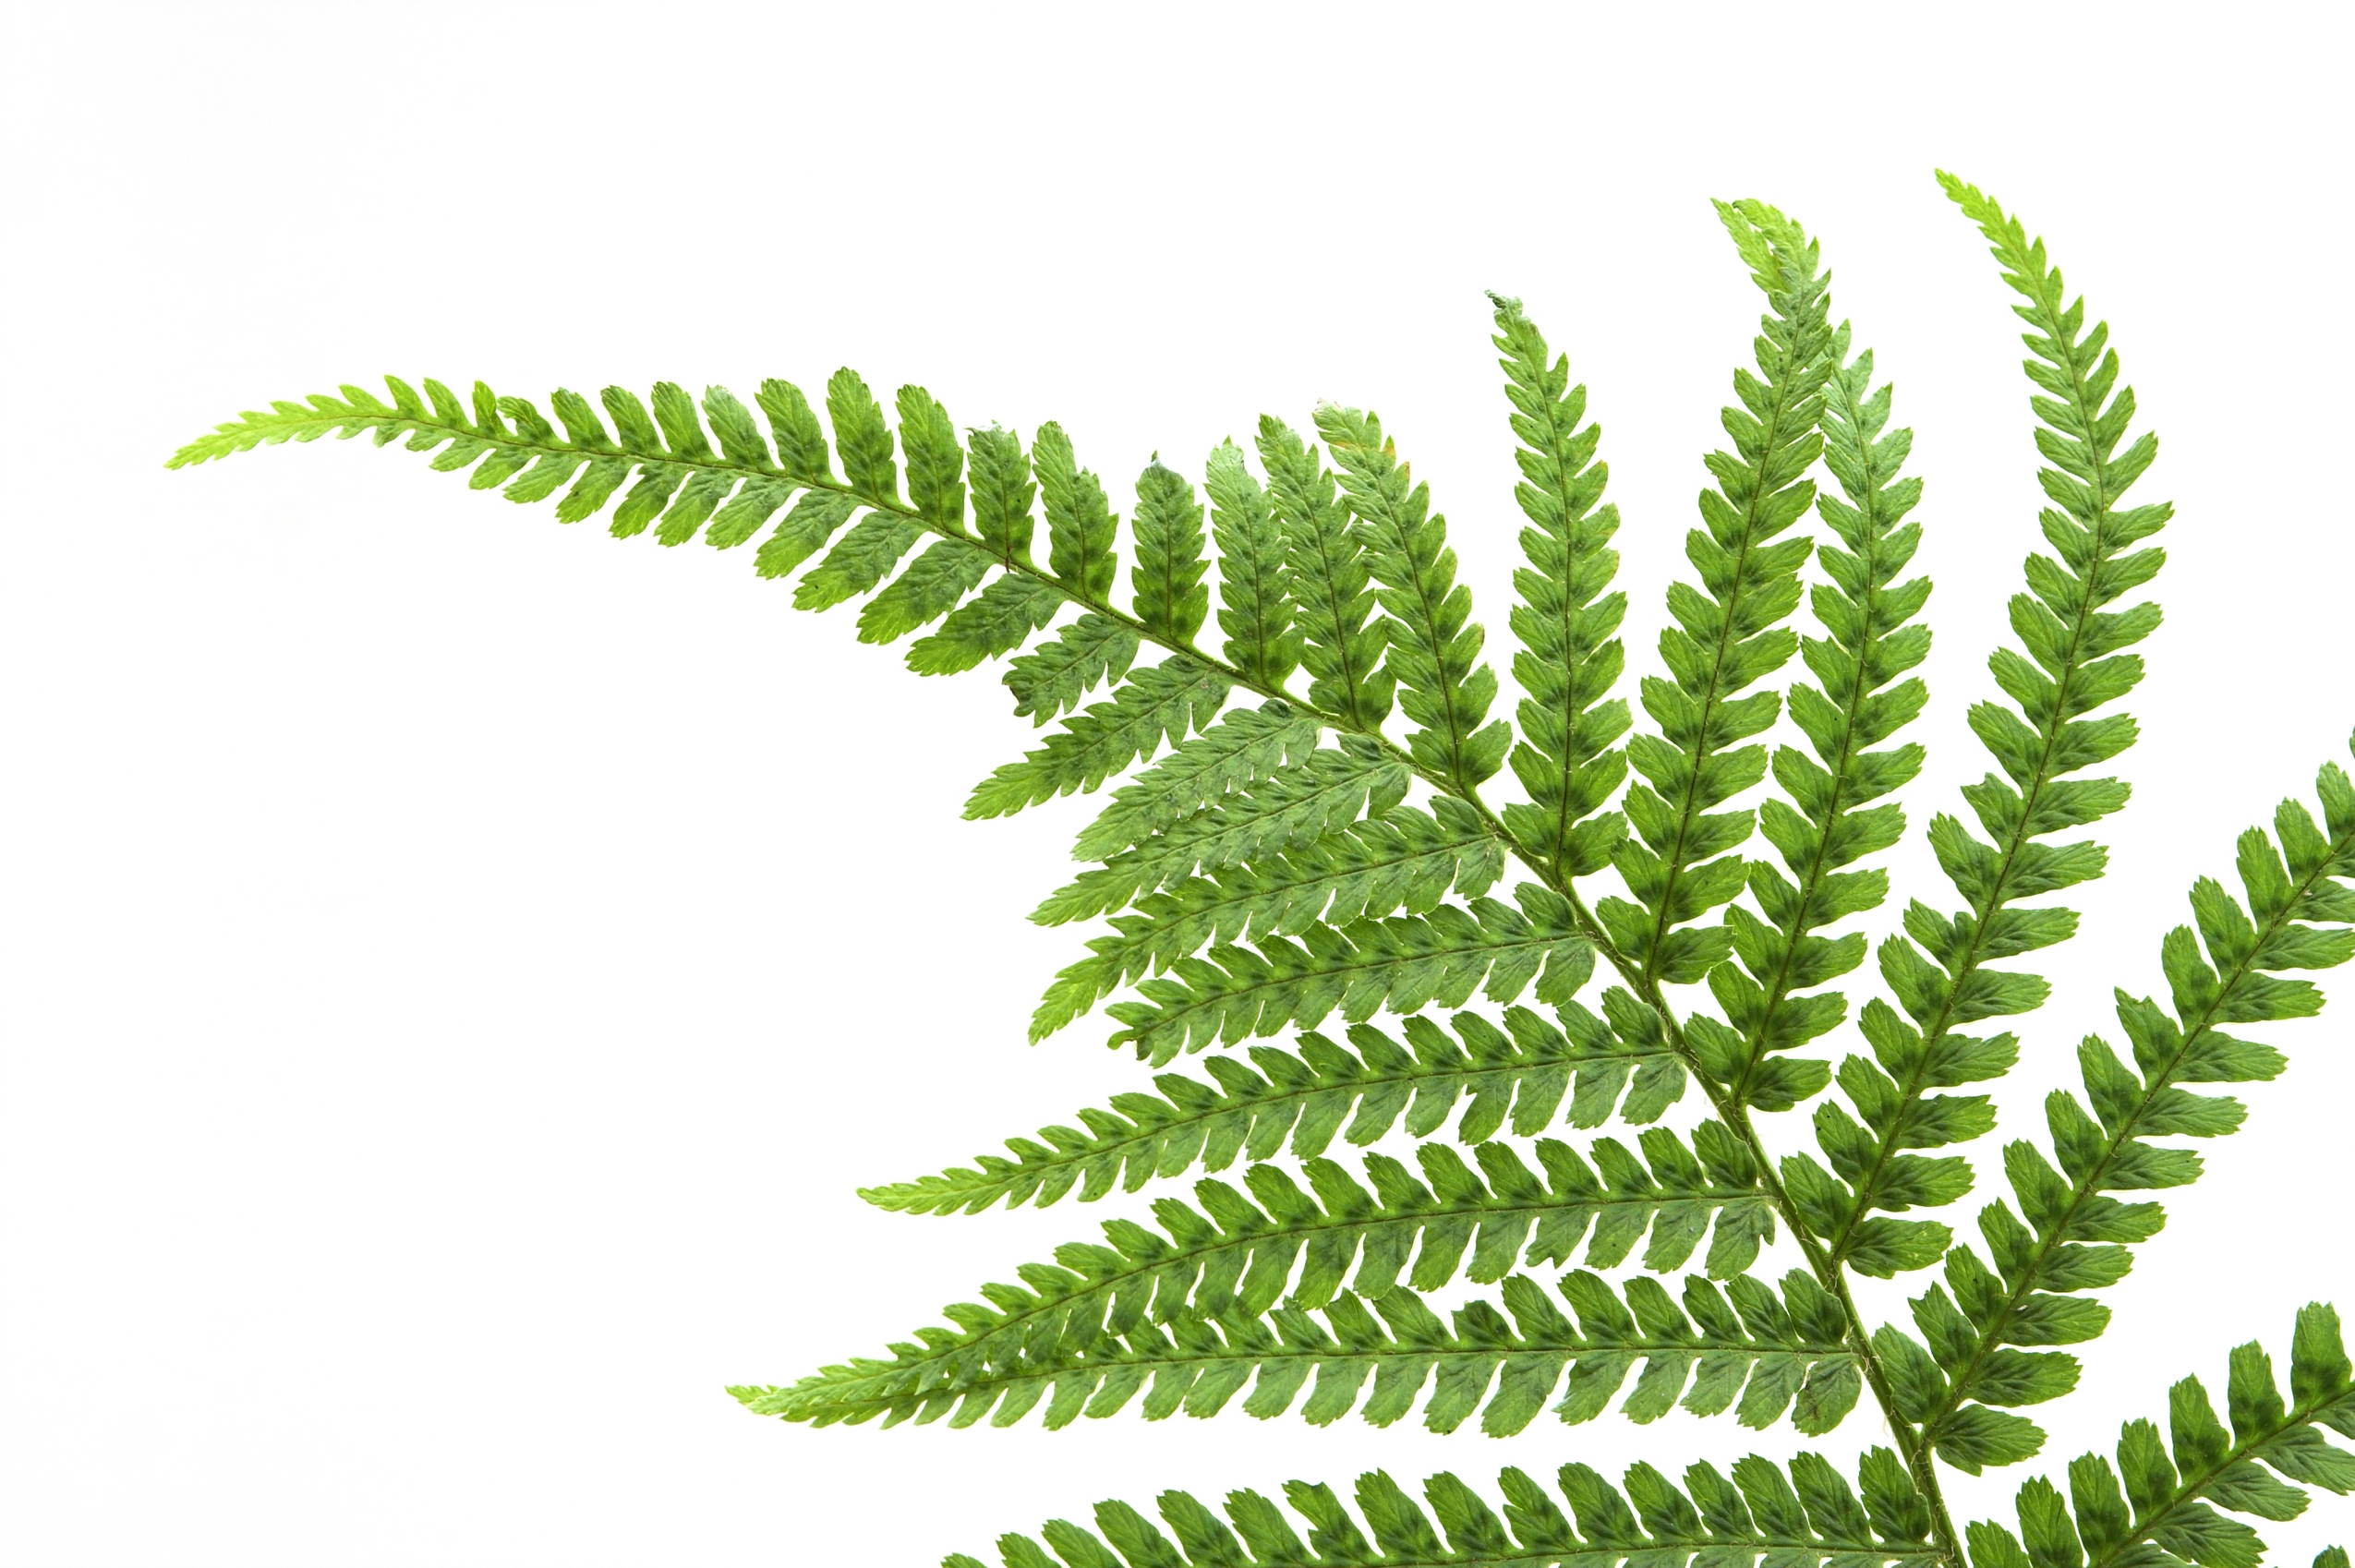 Fern Png image #26200